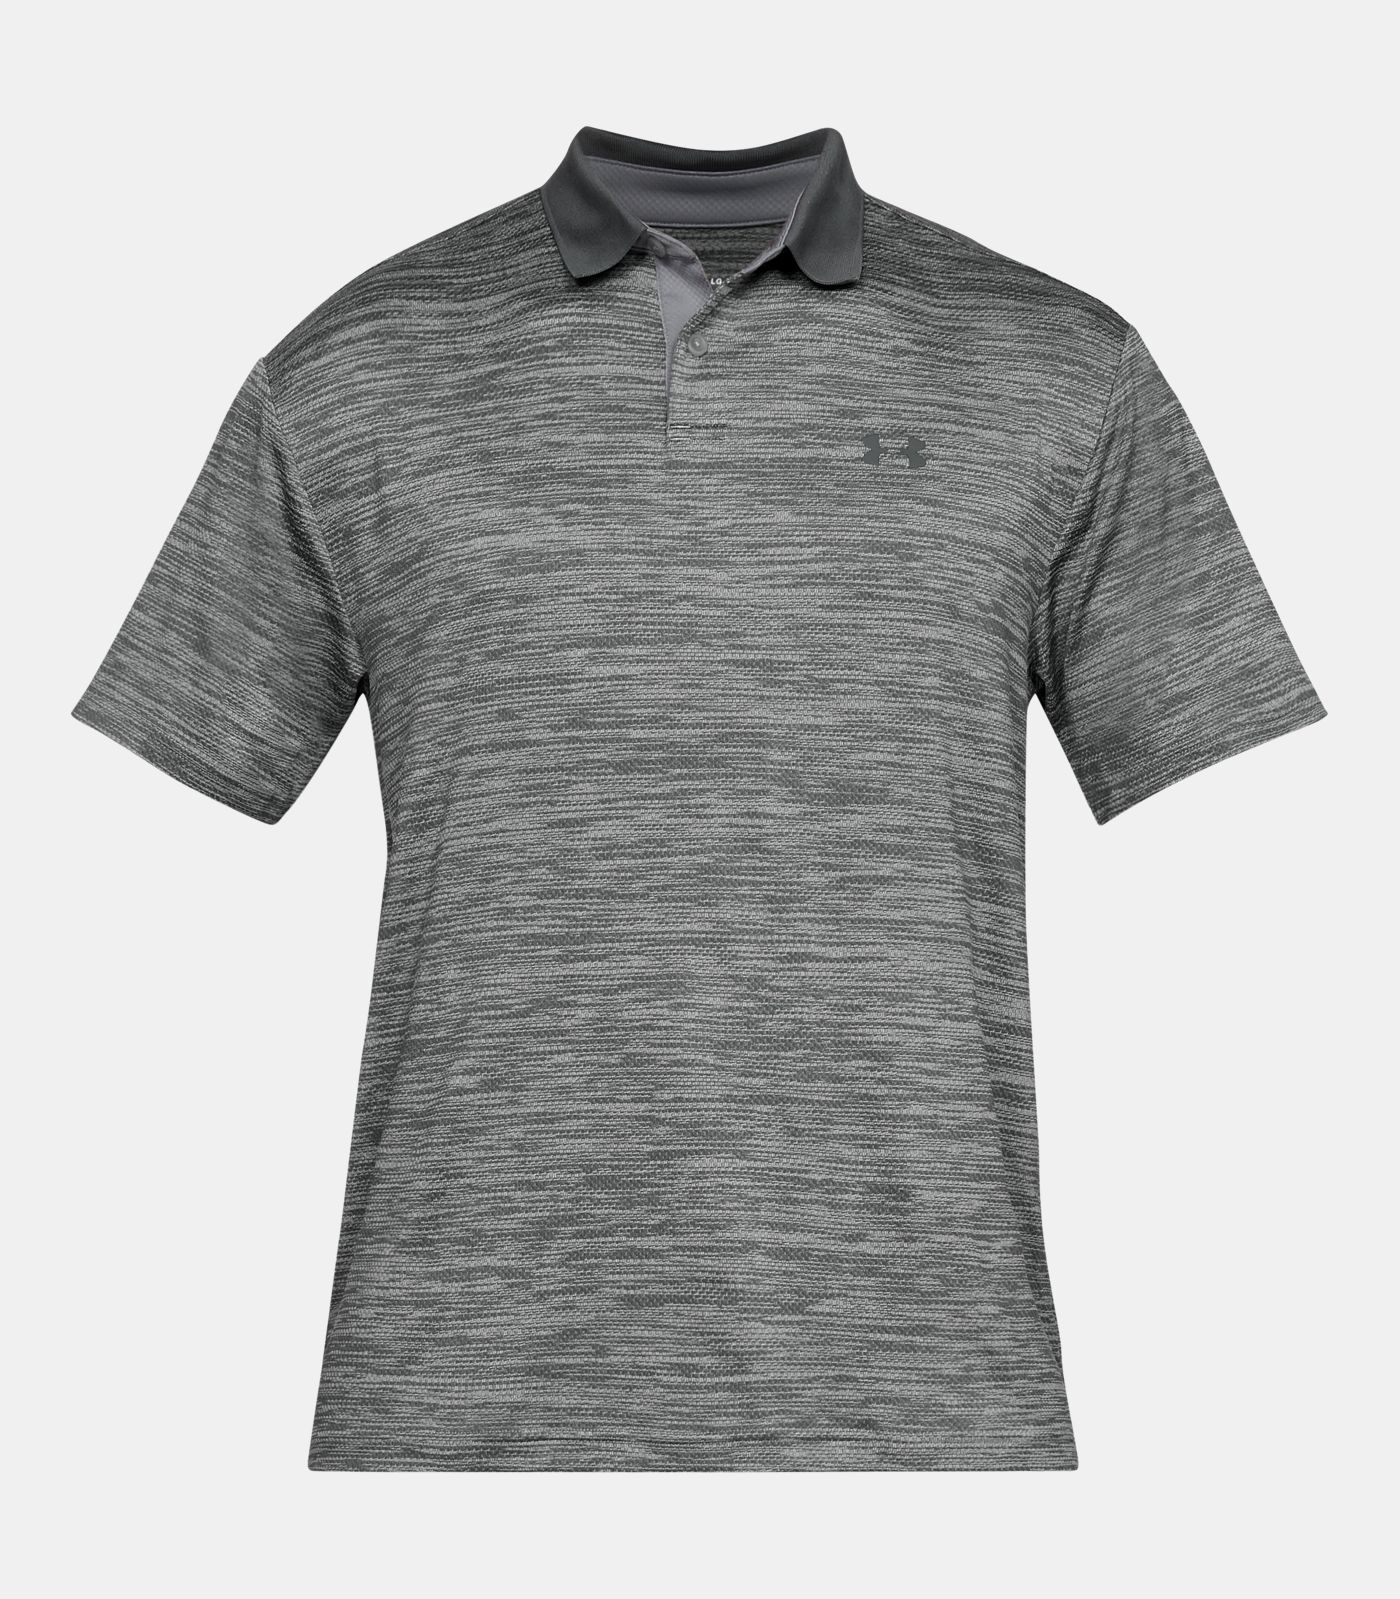 MENS_POLO_PerformanceTextured_UAR1342080035_04